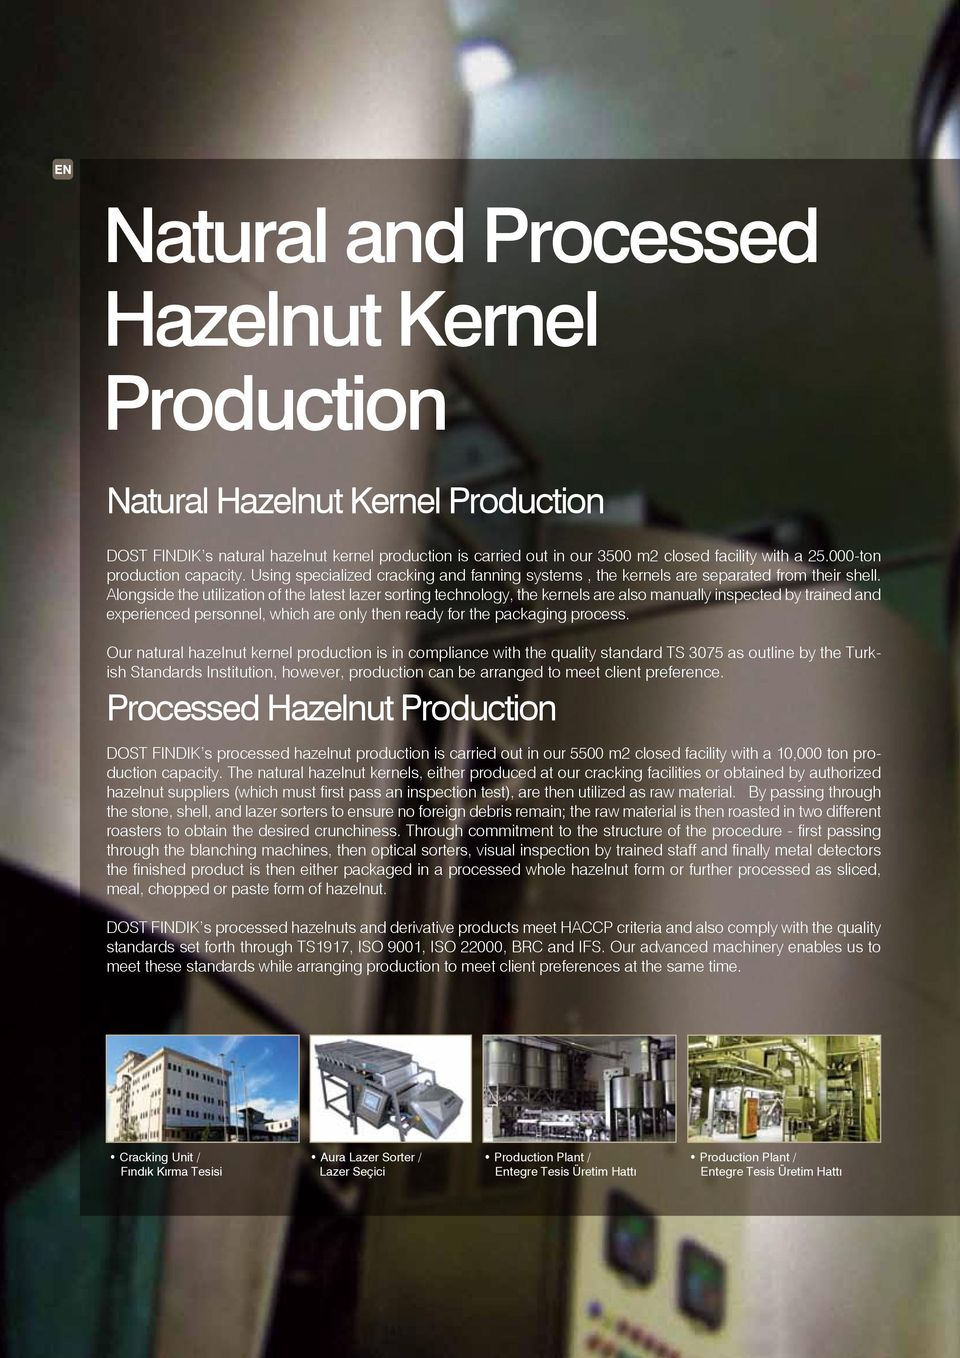 Alongside the utilization of the latest lazer sorting technology, the kernels are also manually inspected by trained and experienced personnel, which are only then ready for the packaging process.